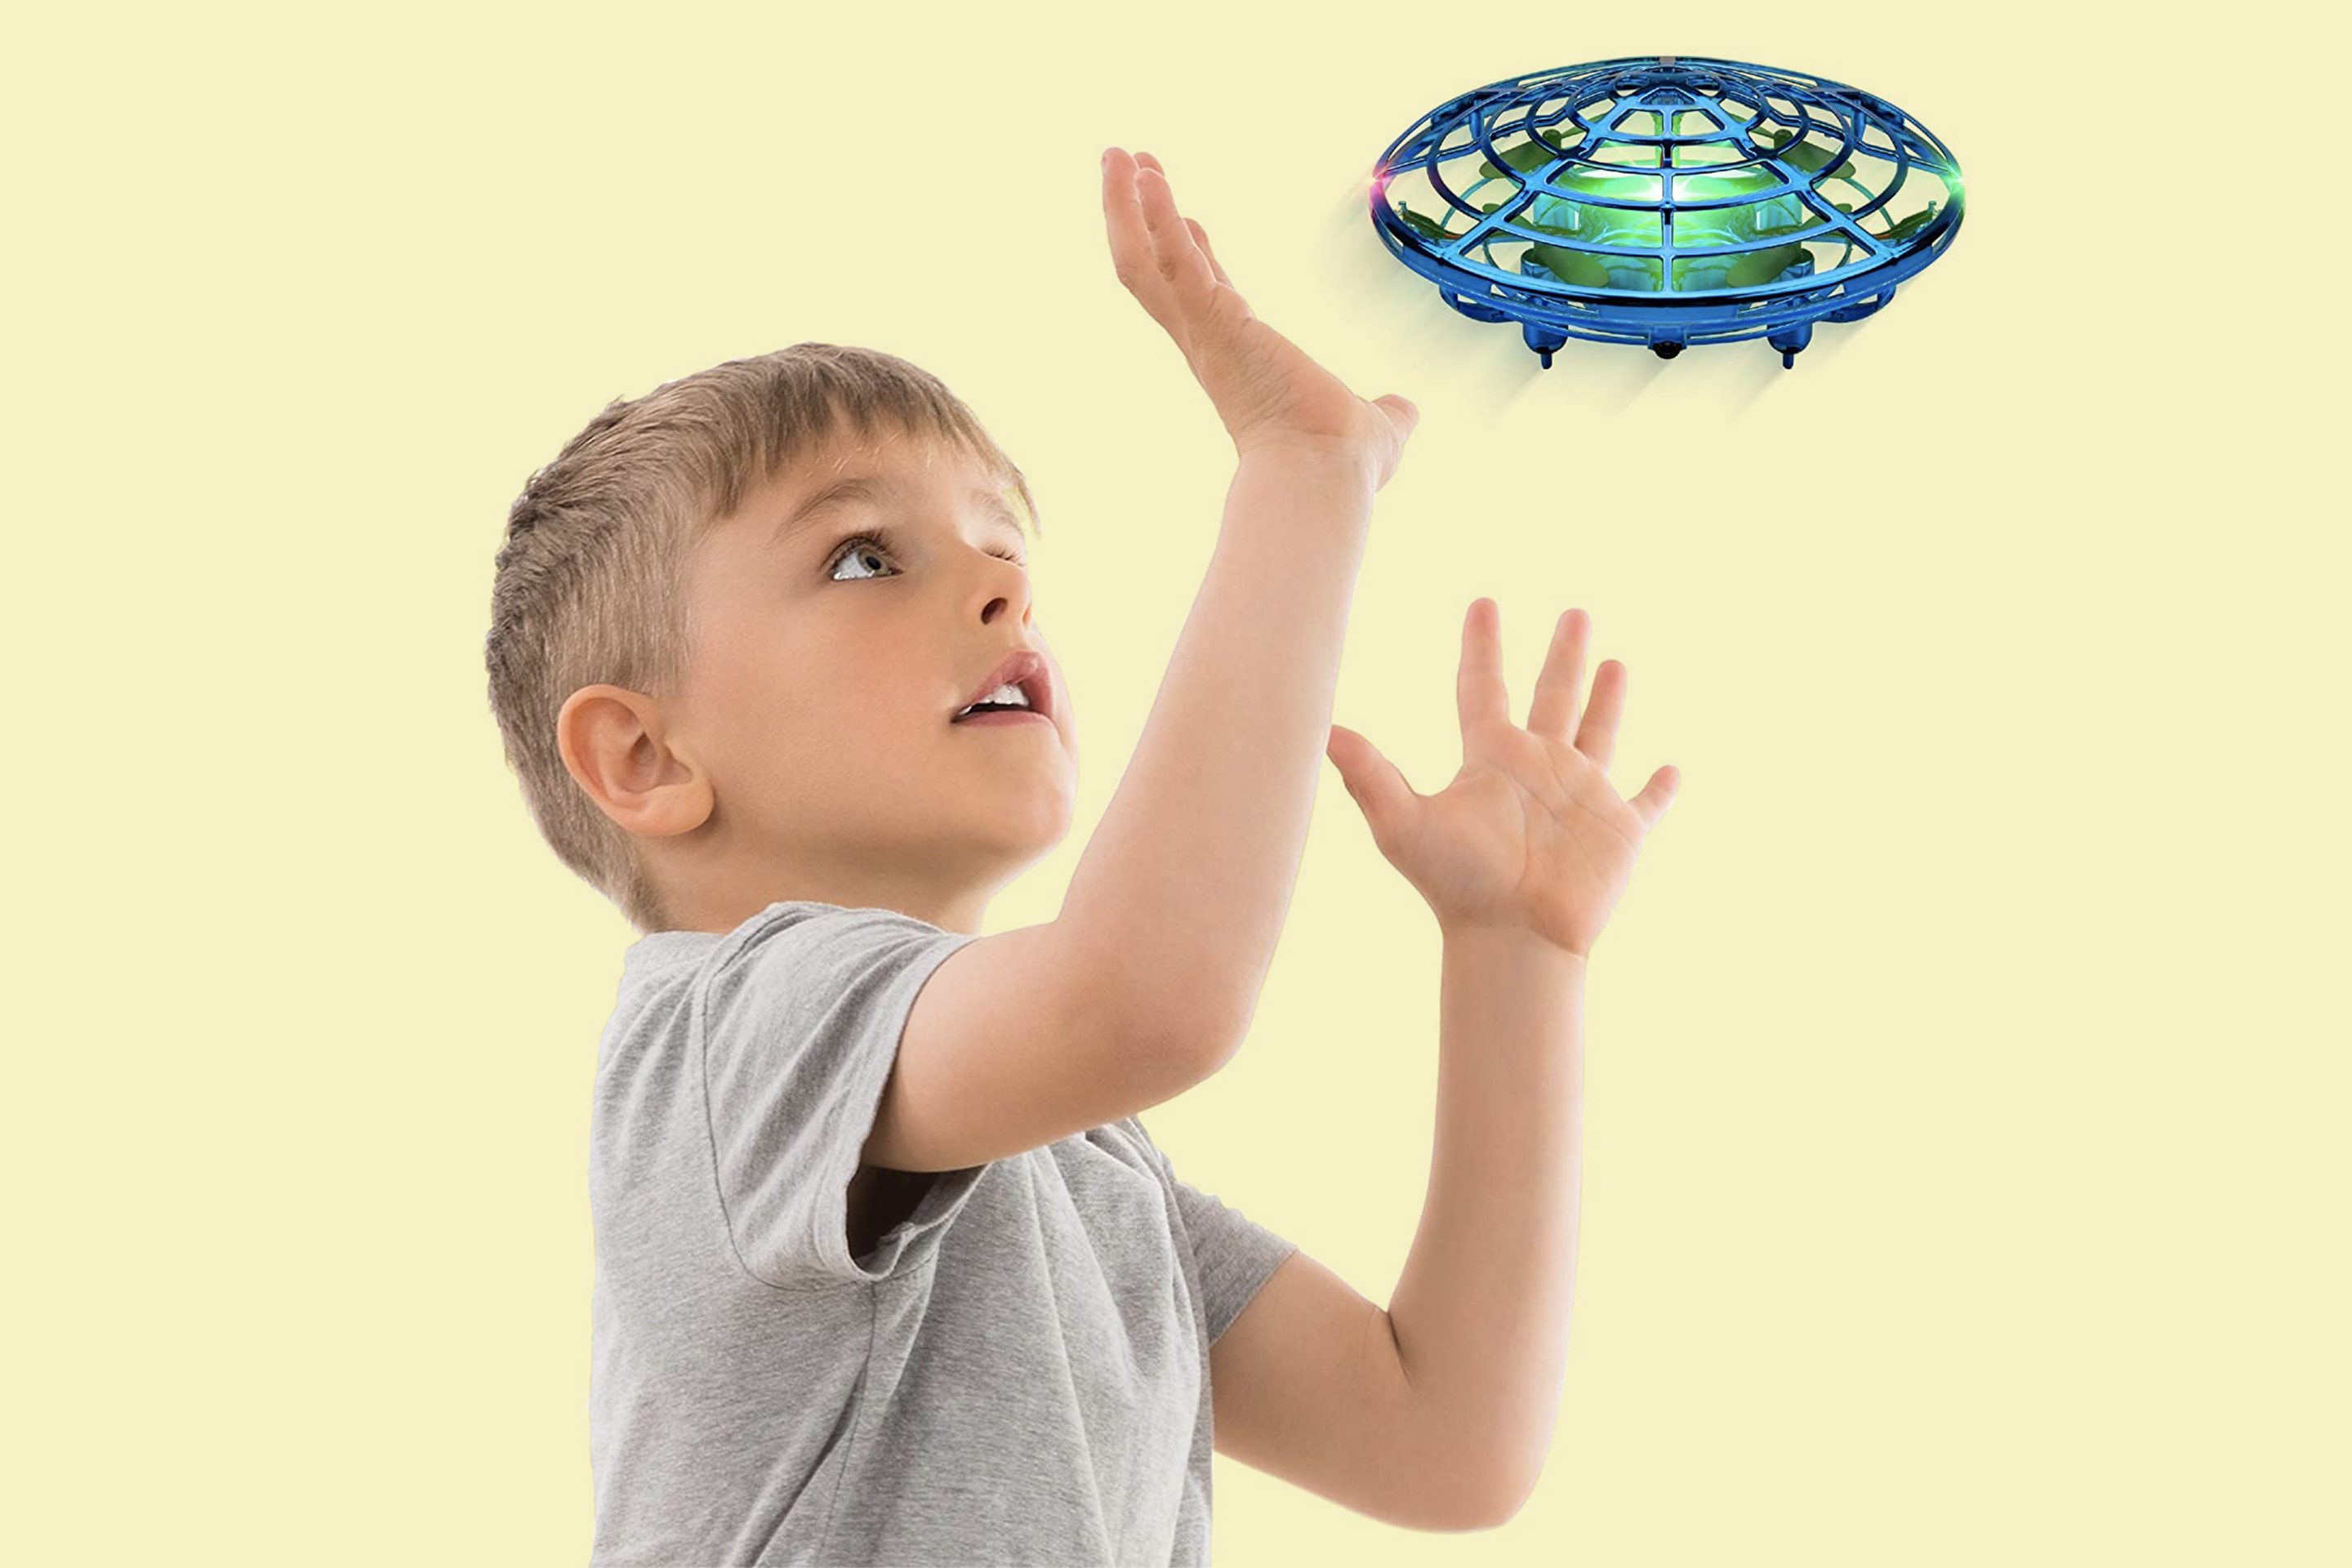 Force1 Scoot Hand Operated Drone for Kids